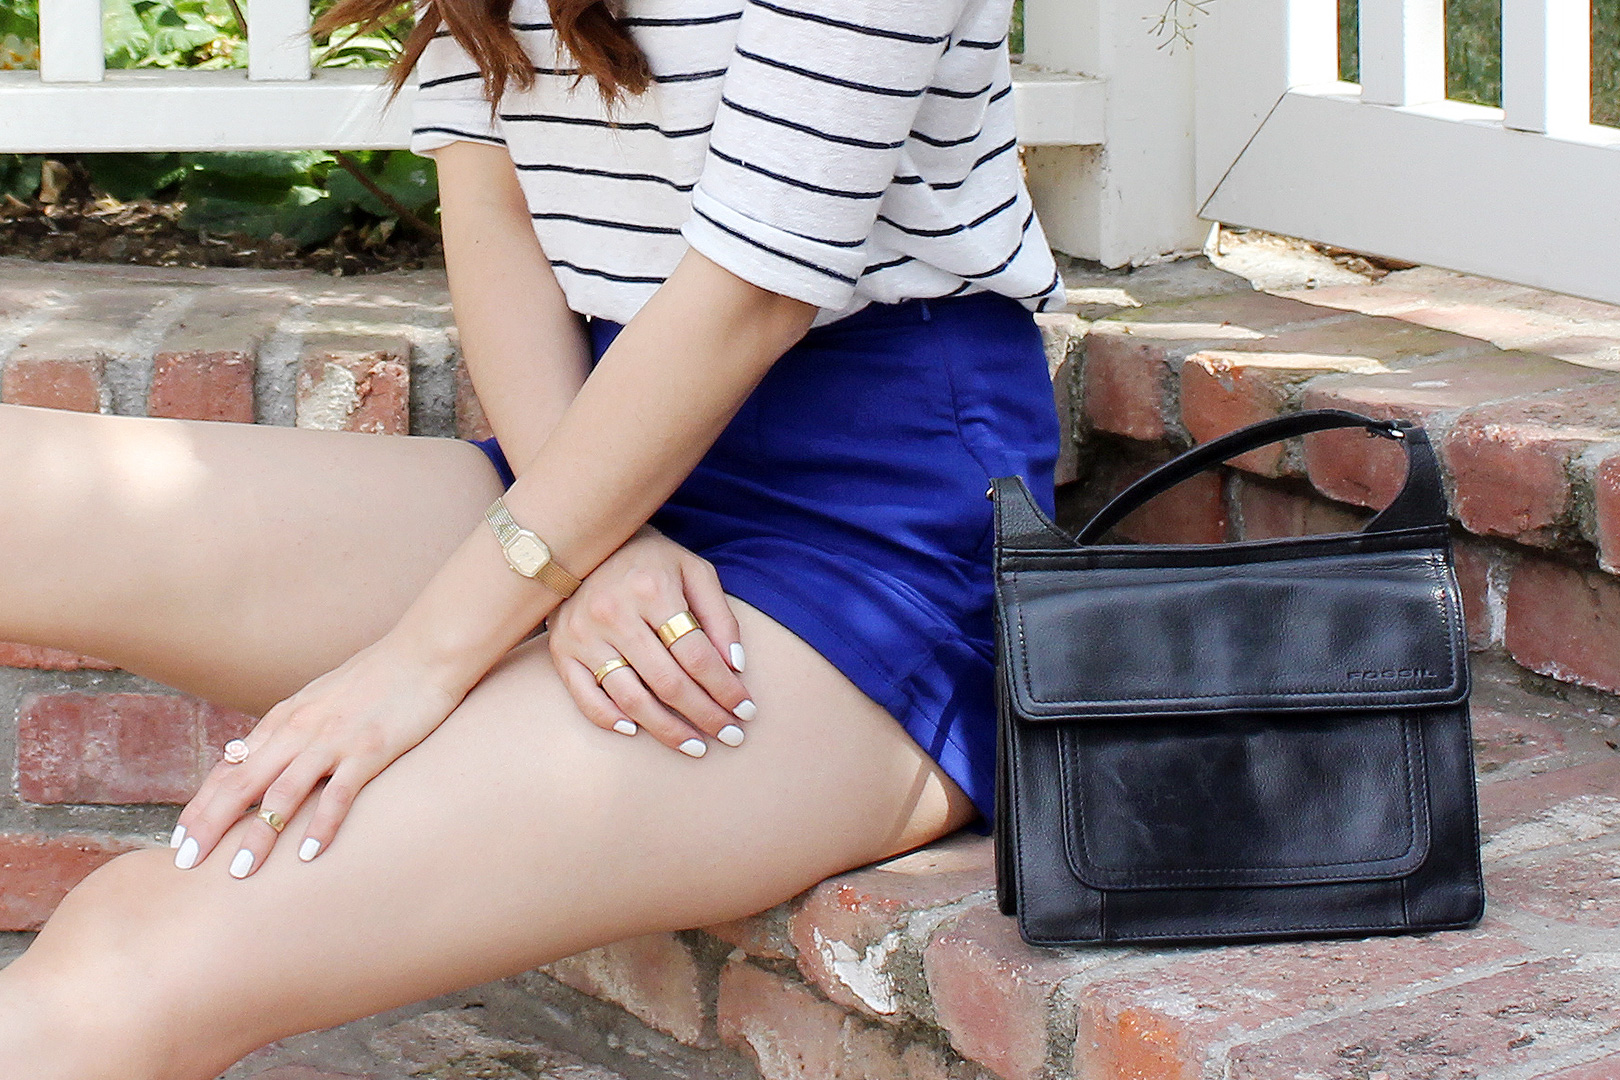 Vintage Omega watch, Gold jewelry from Artists & Fleas, Fossil Crossbody Bag, Rose ring from Forever 21